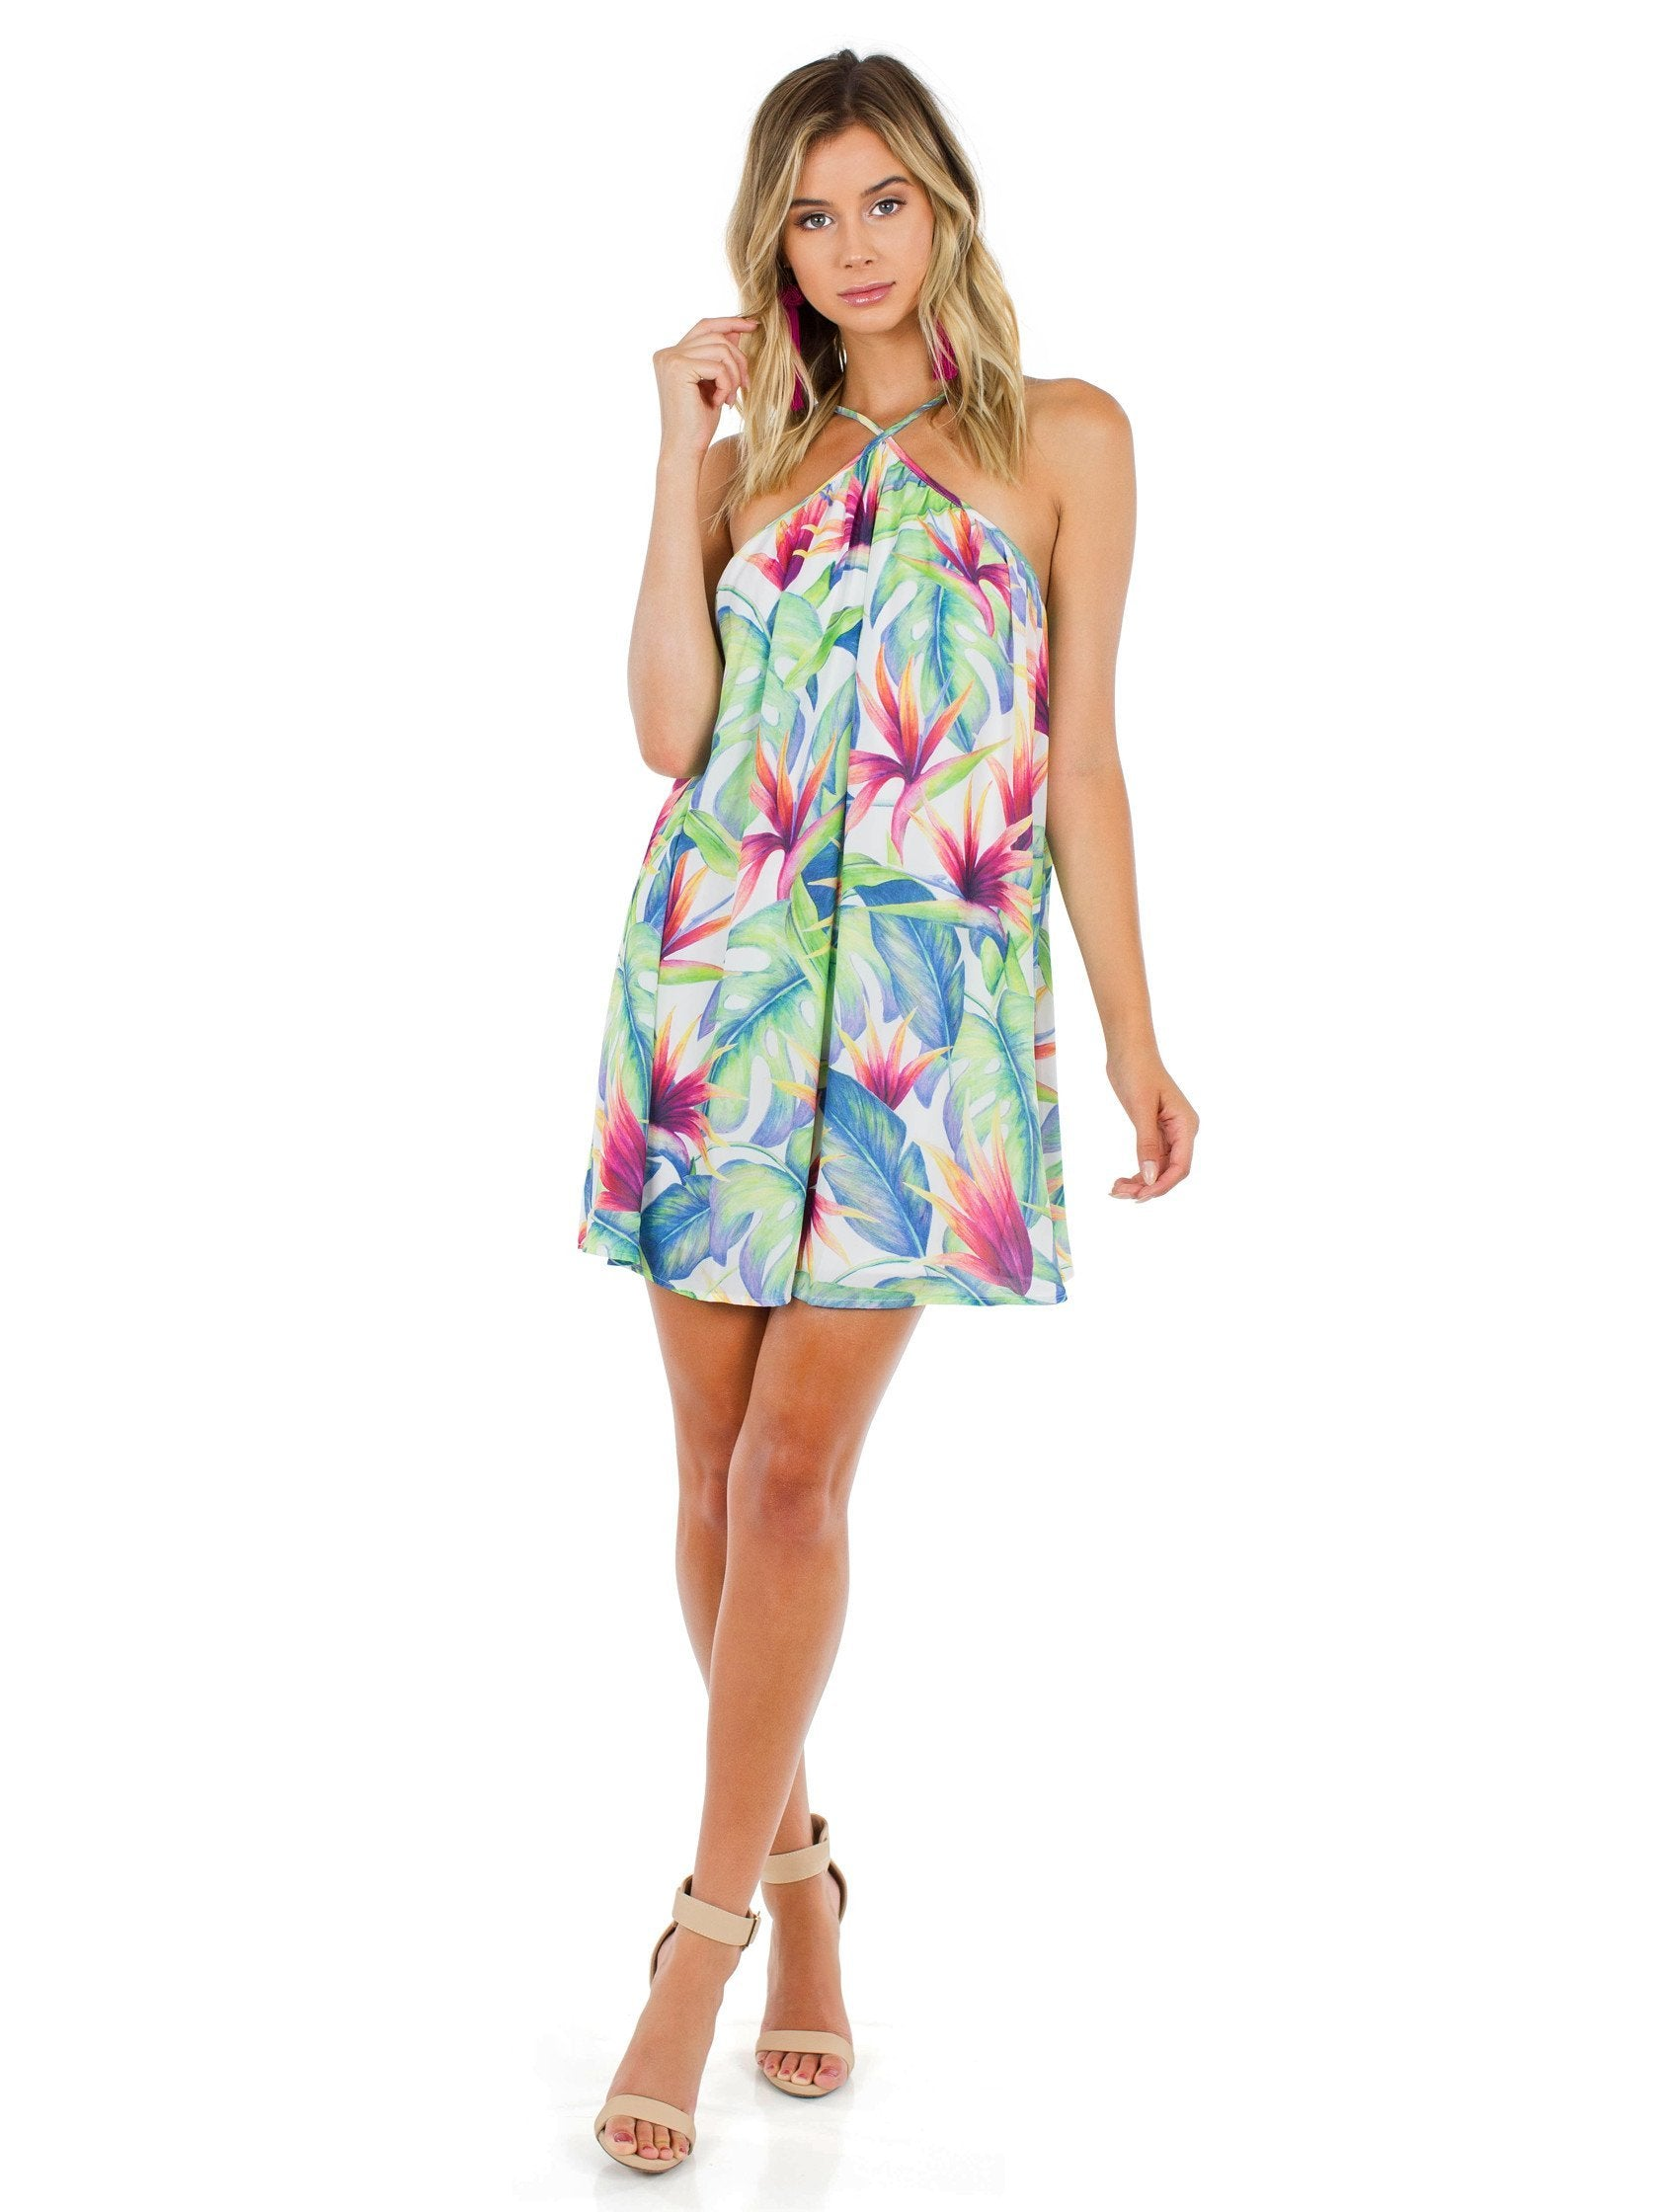 Girl outfit in a dress rental from Show Me Your Mumu called Lexington Mini Dress